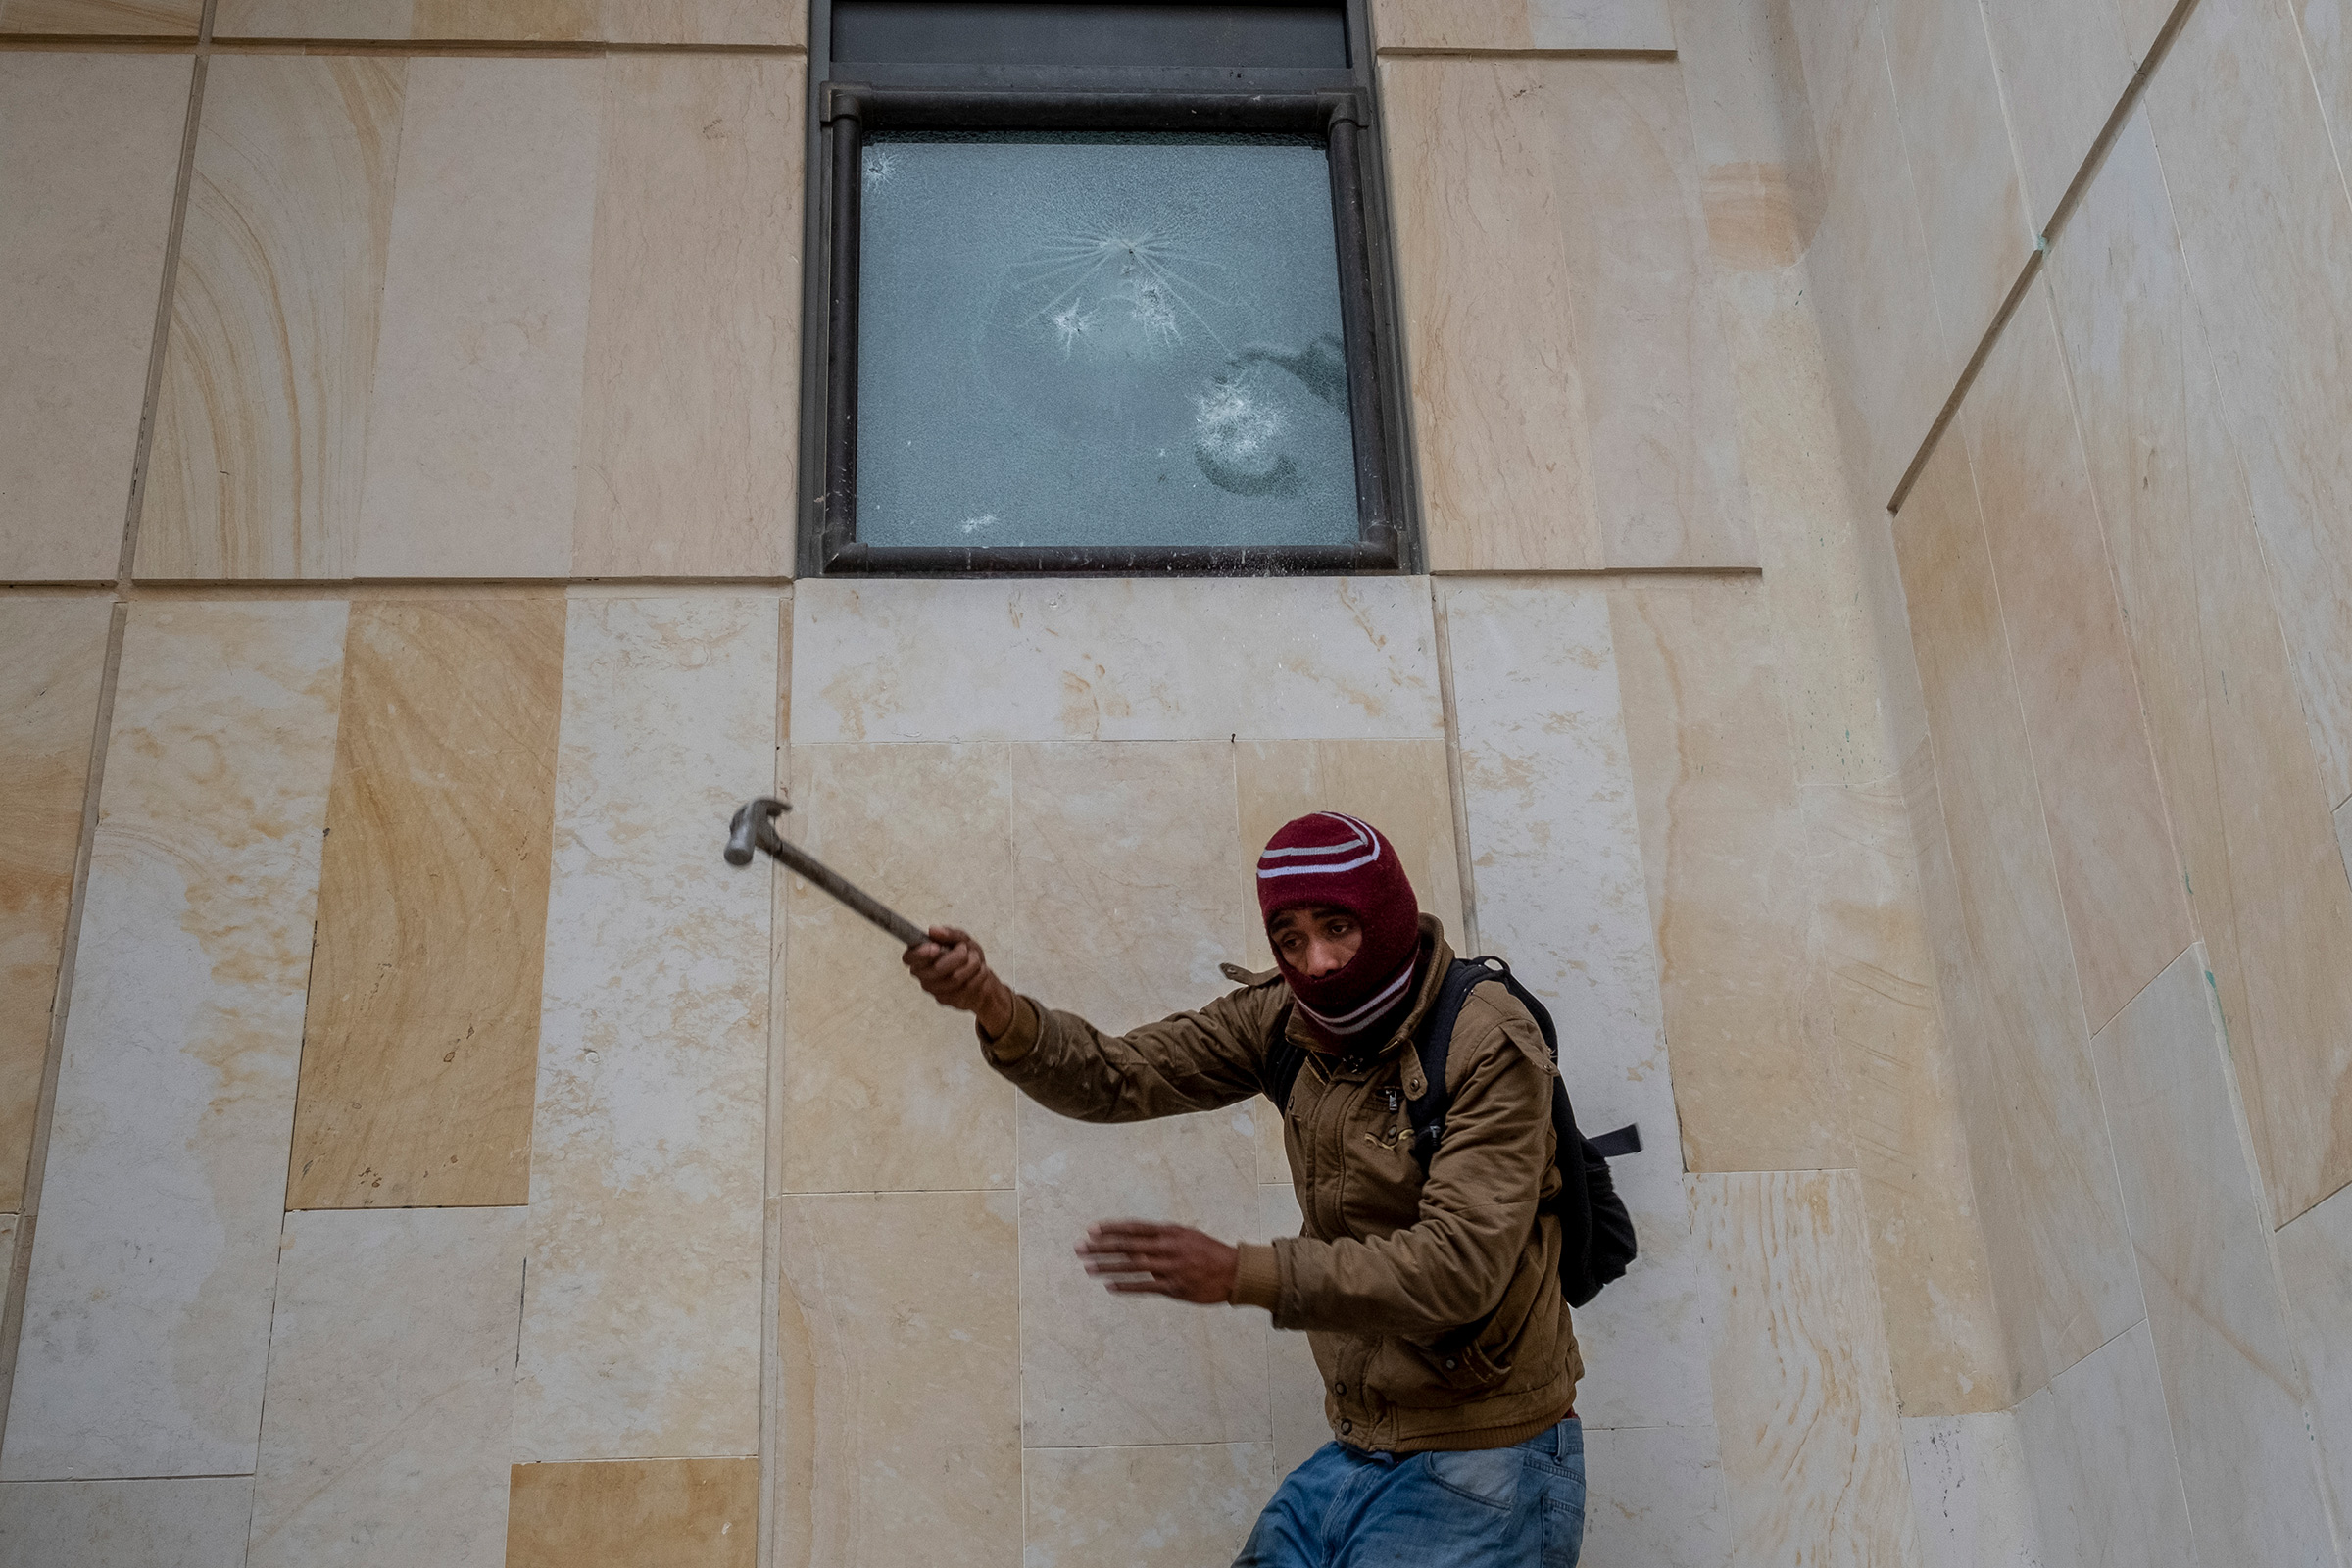 A protestor breaks a window at the Supreme Court Of Justice in downtown Bogotá on April 28.